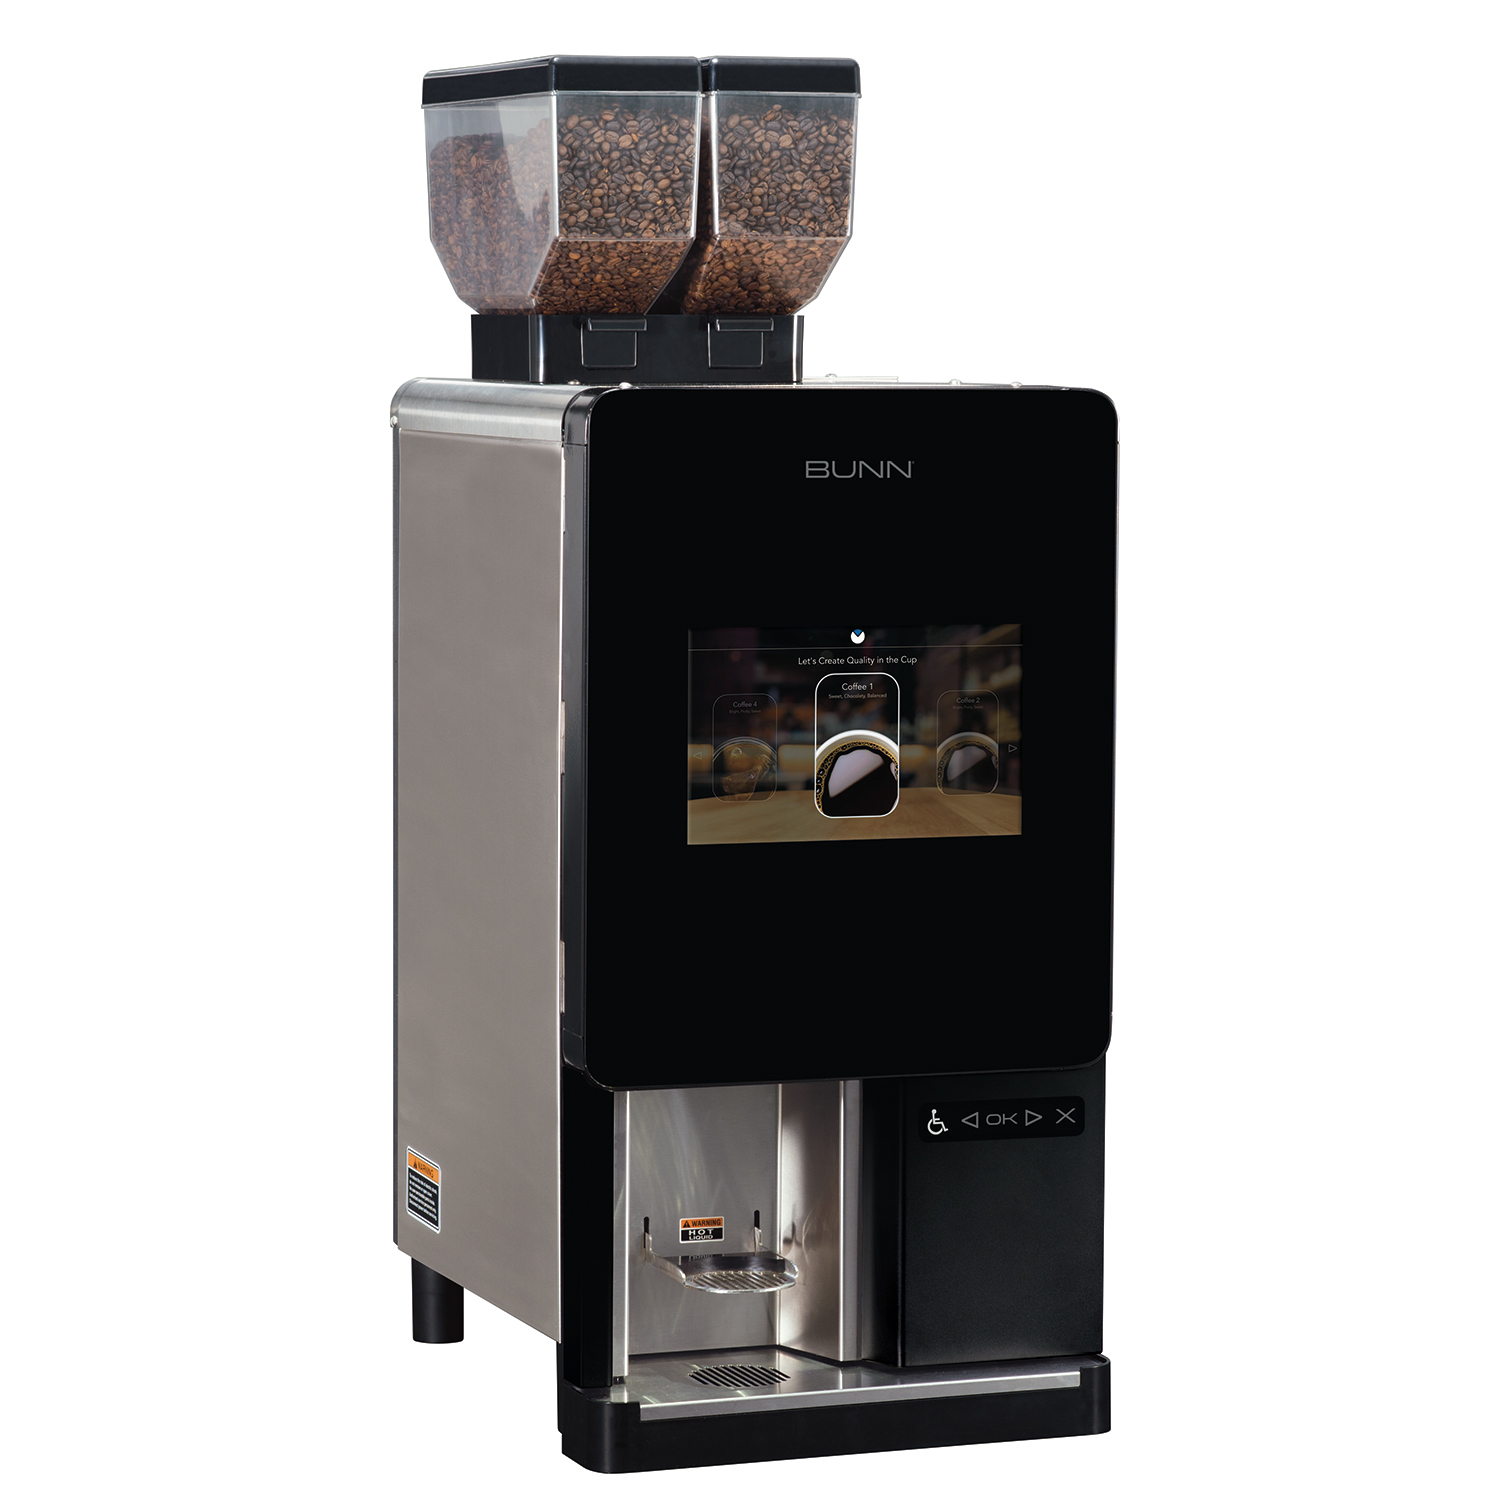 BUNN 44400.0105 coffee brewer, for single cup